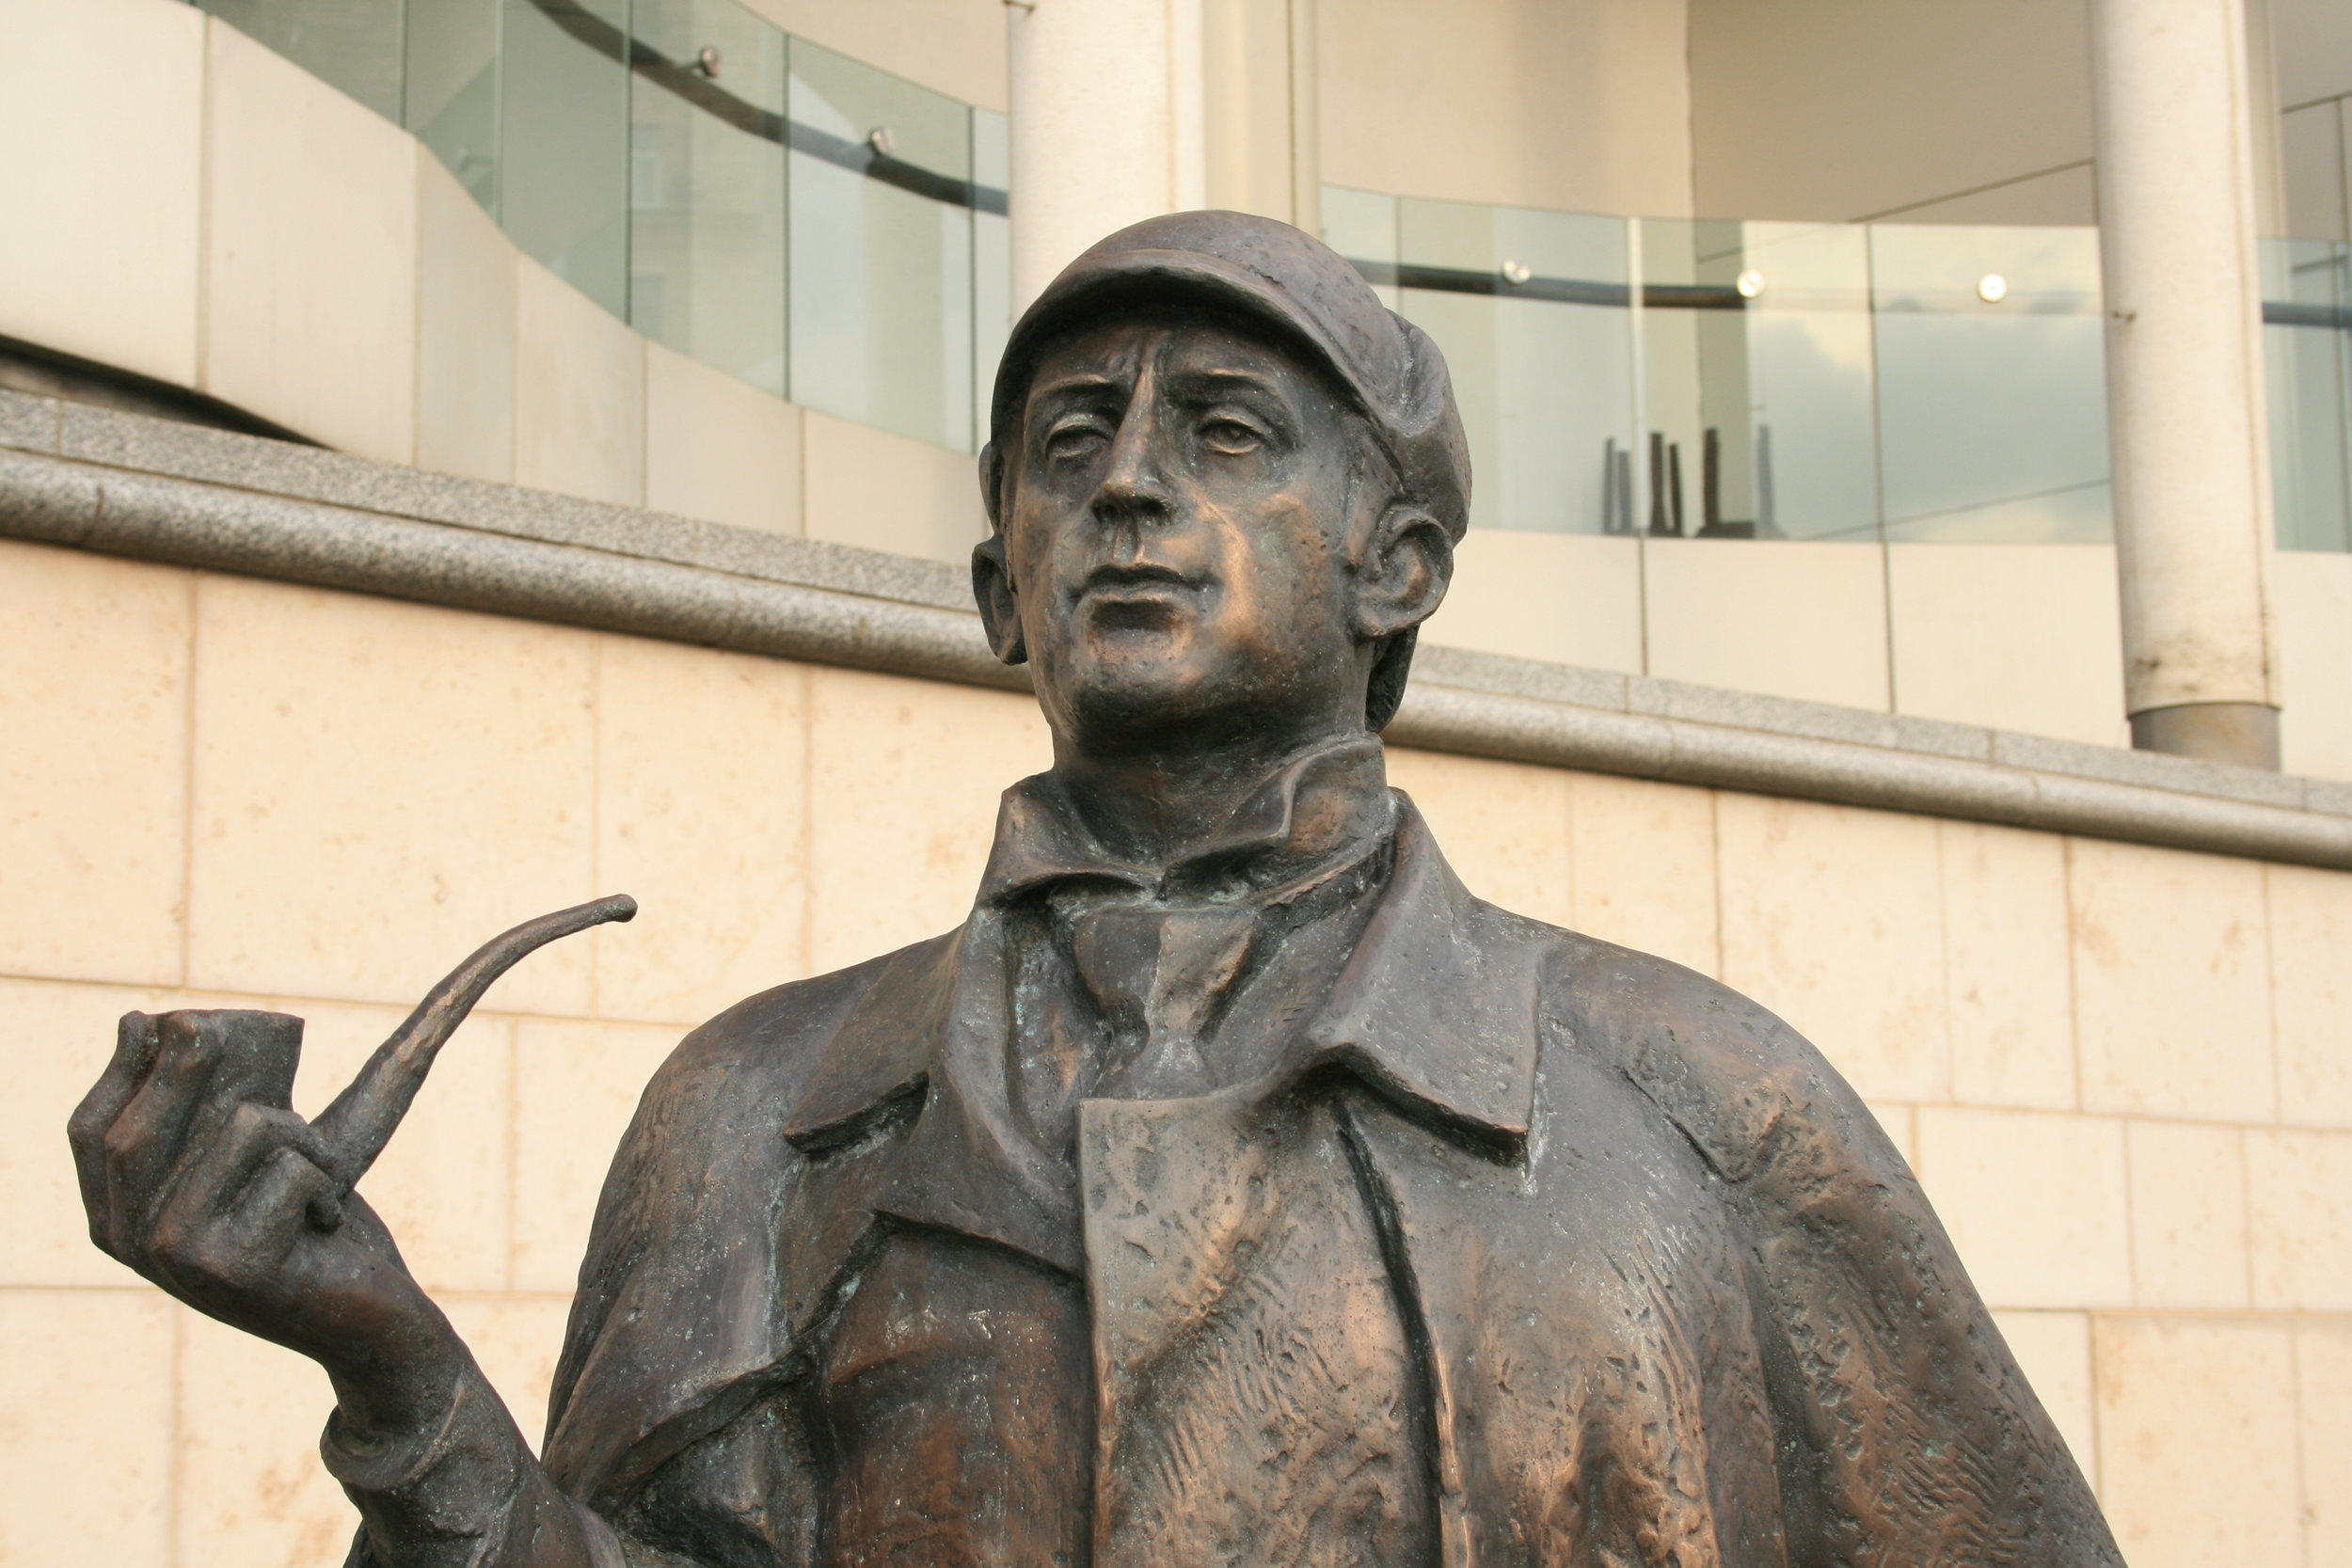 Sherlock Holmes statue in Moscow which resembles Jeremy Brett